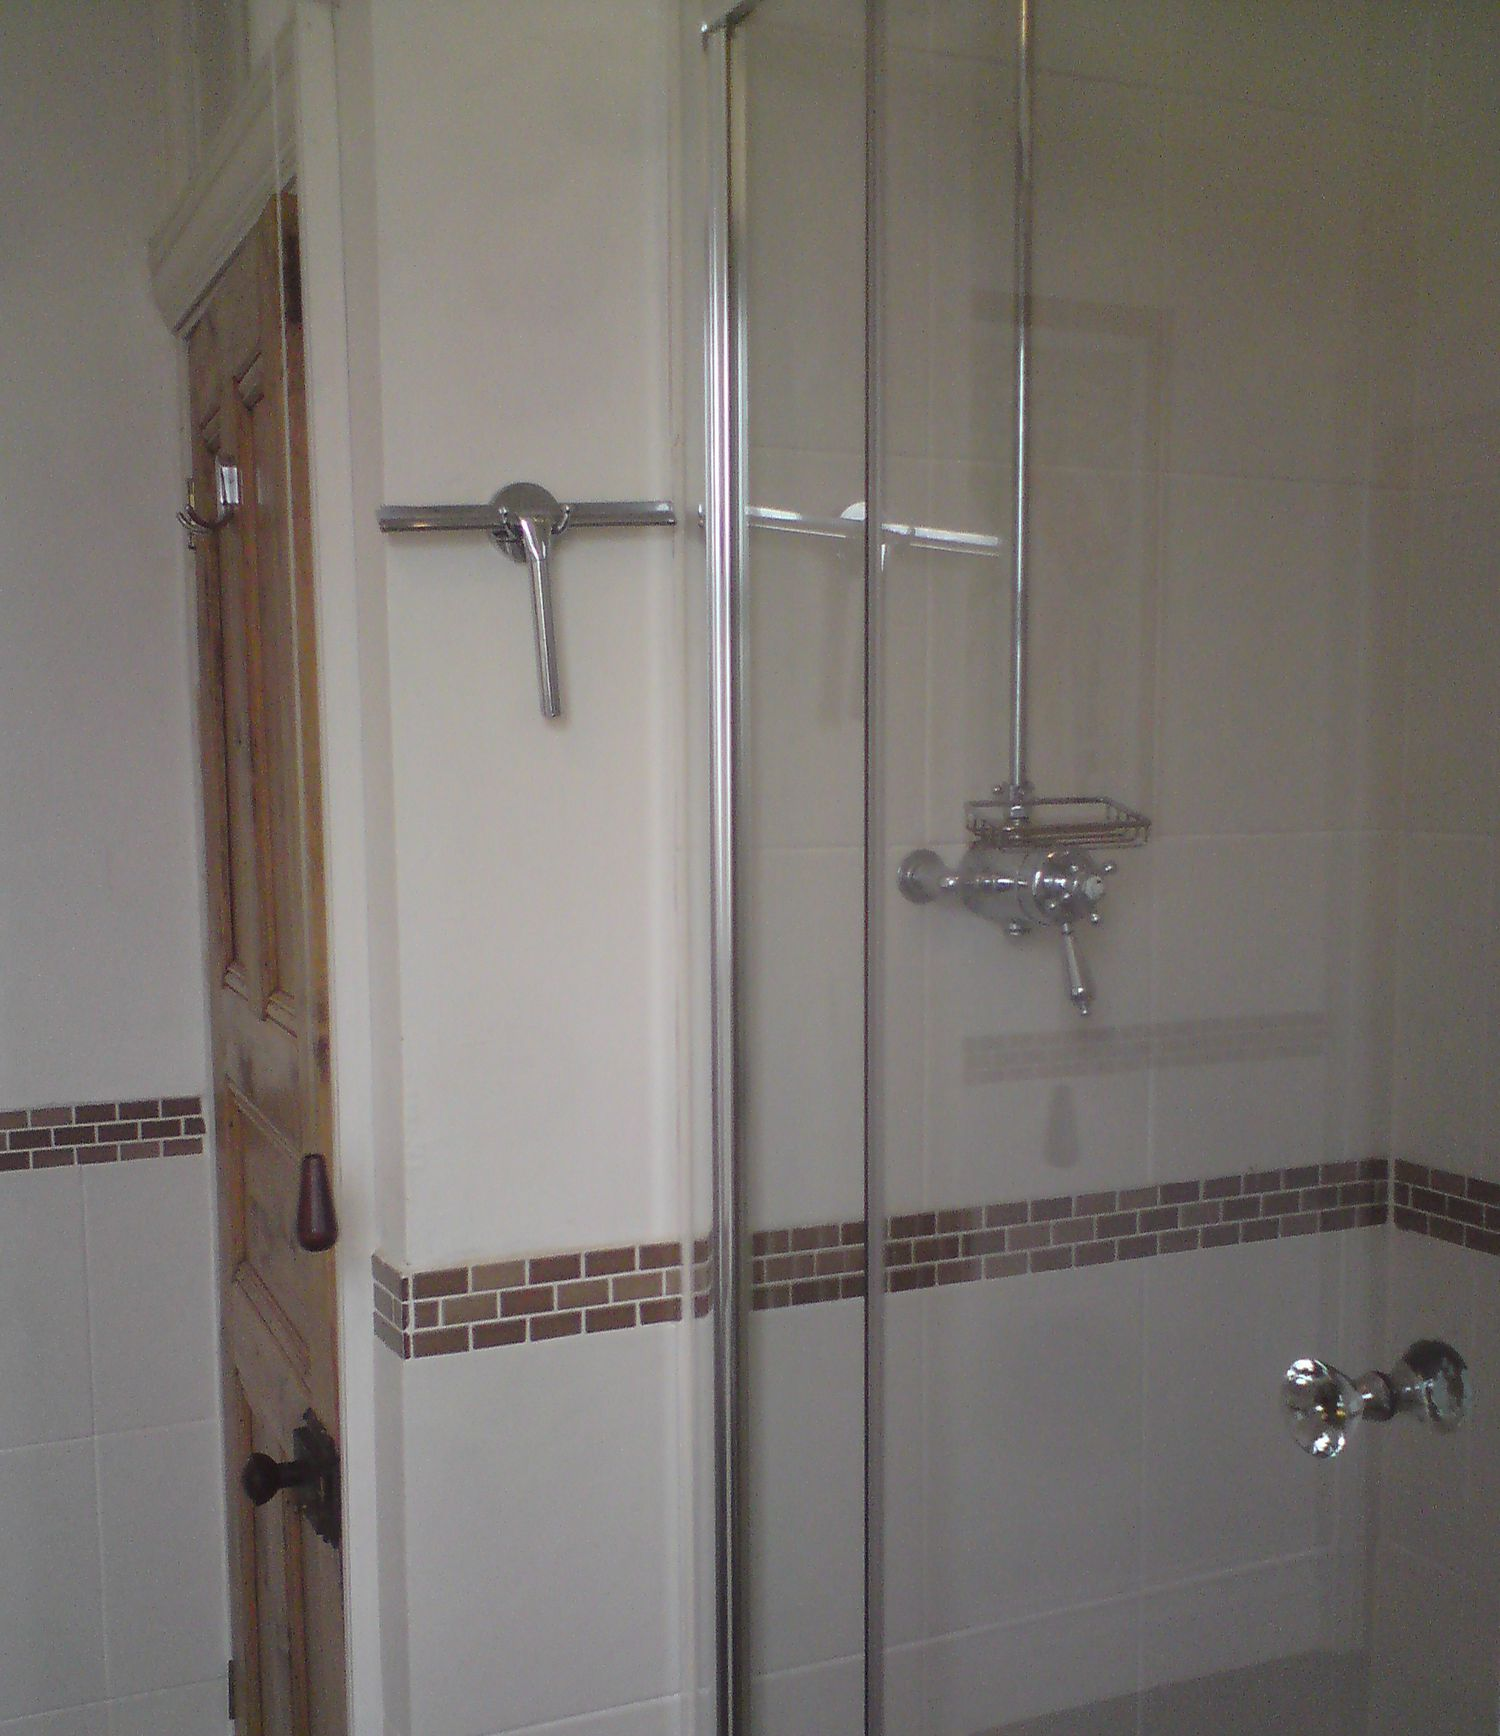 The old glass door to the shower enclosure, showing the smaller shower area.